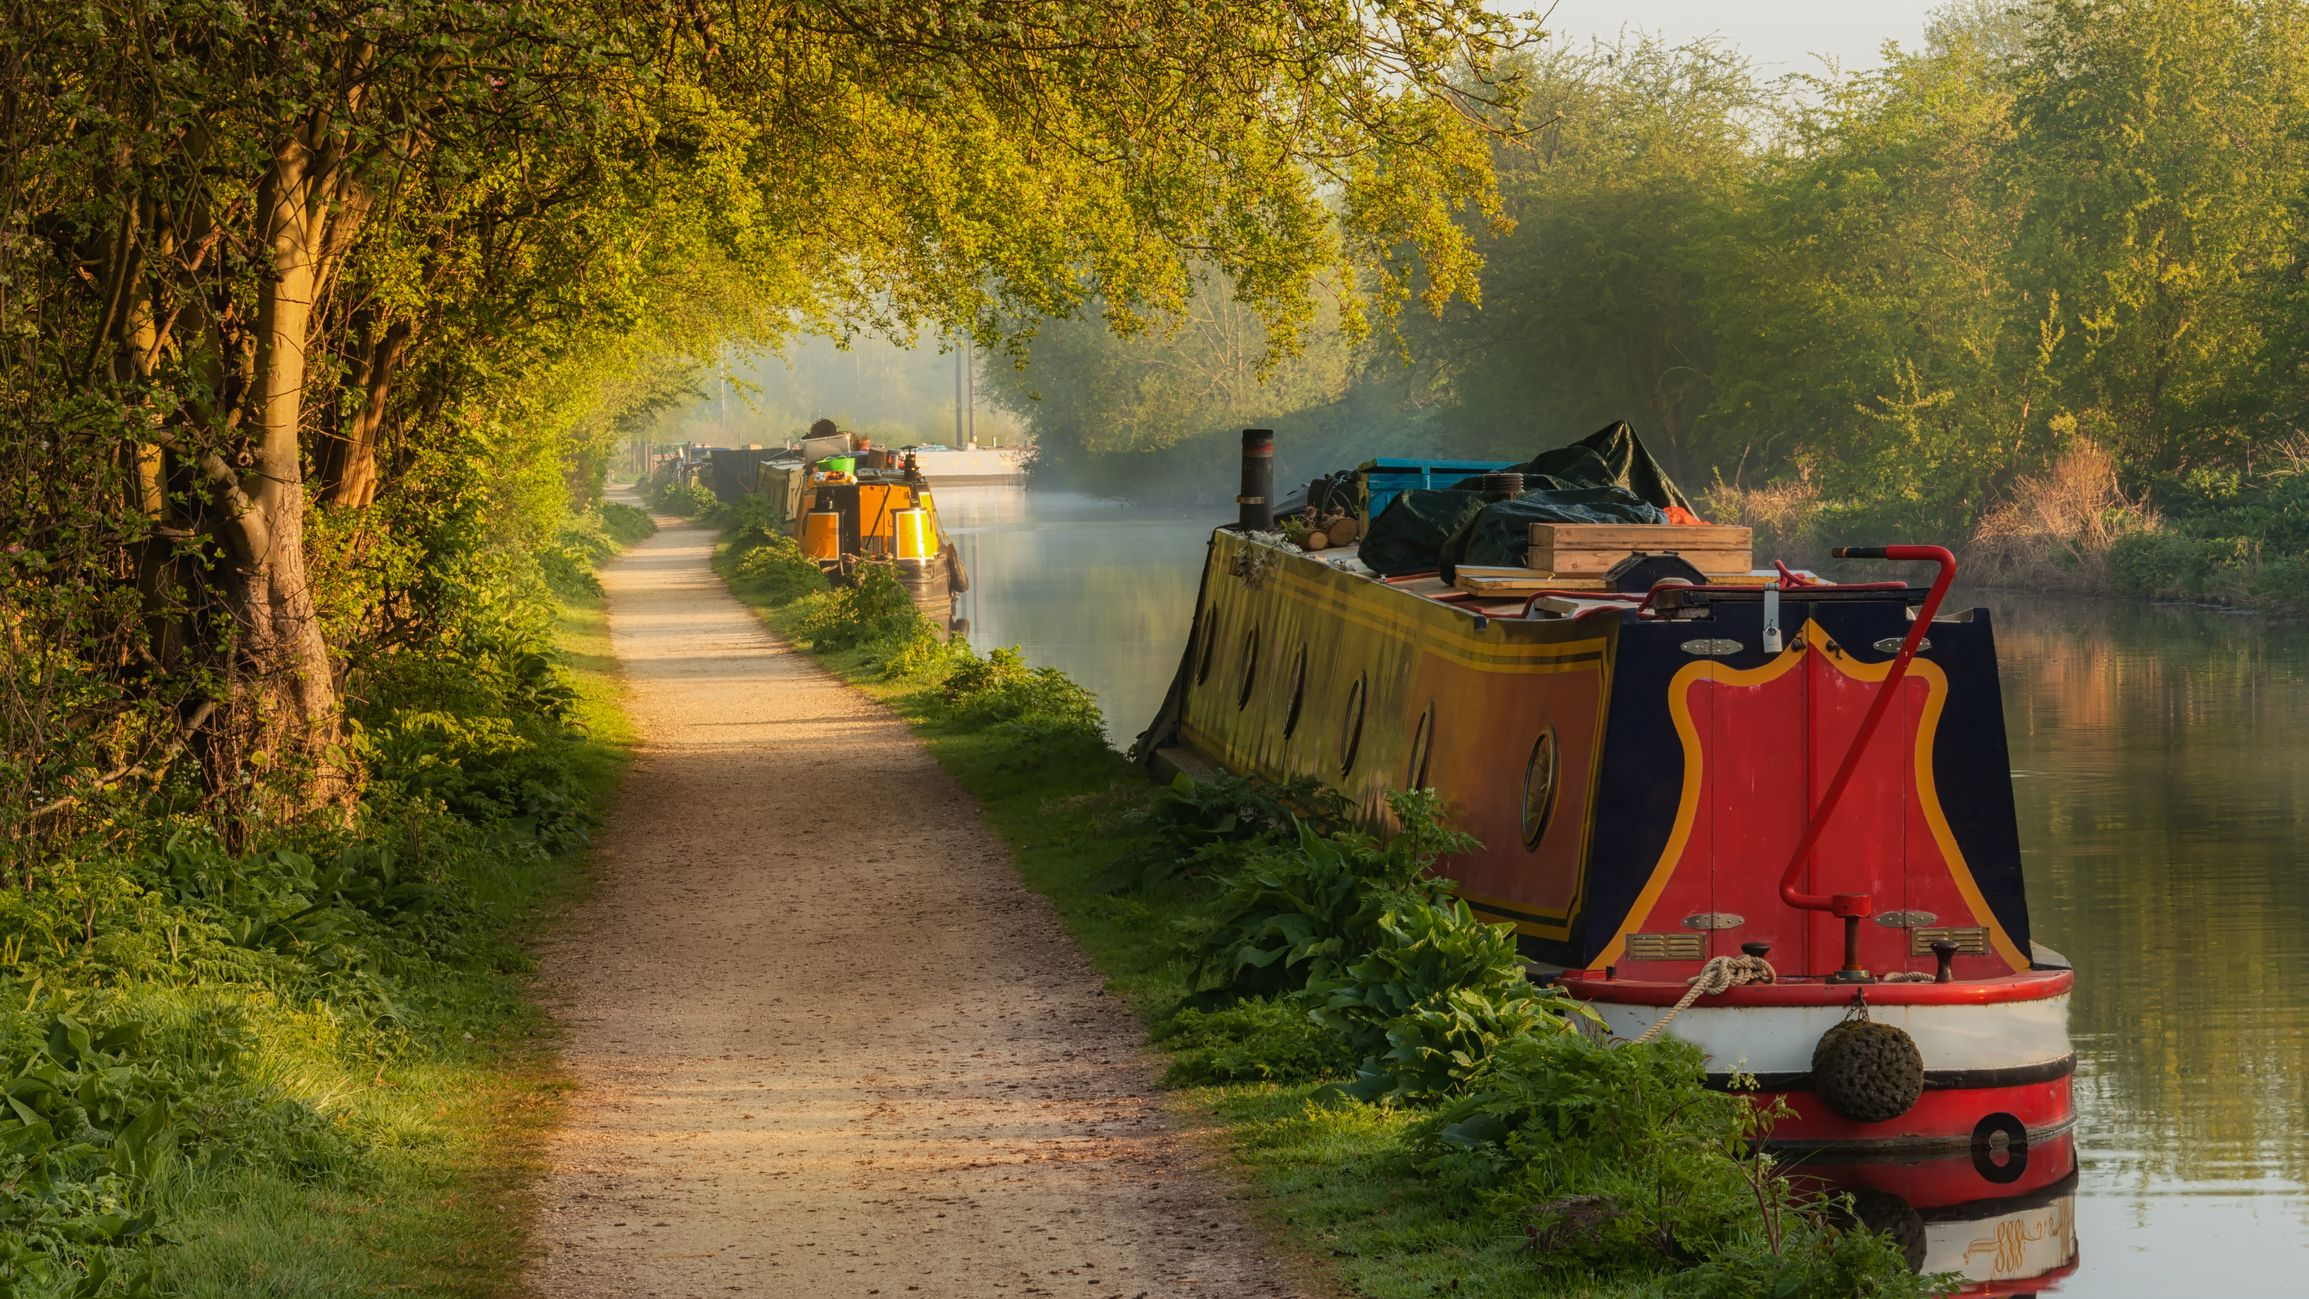 10 best London commuter towns for 2019 revealed